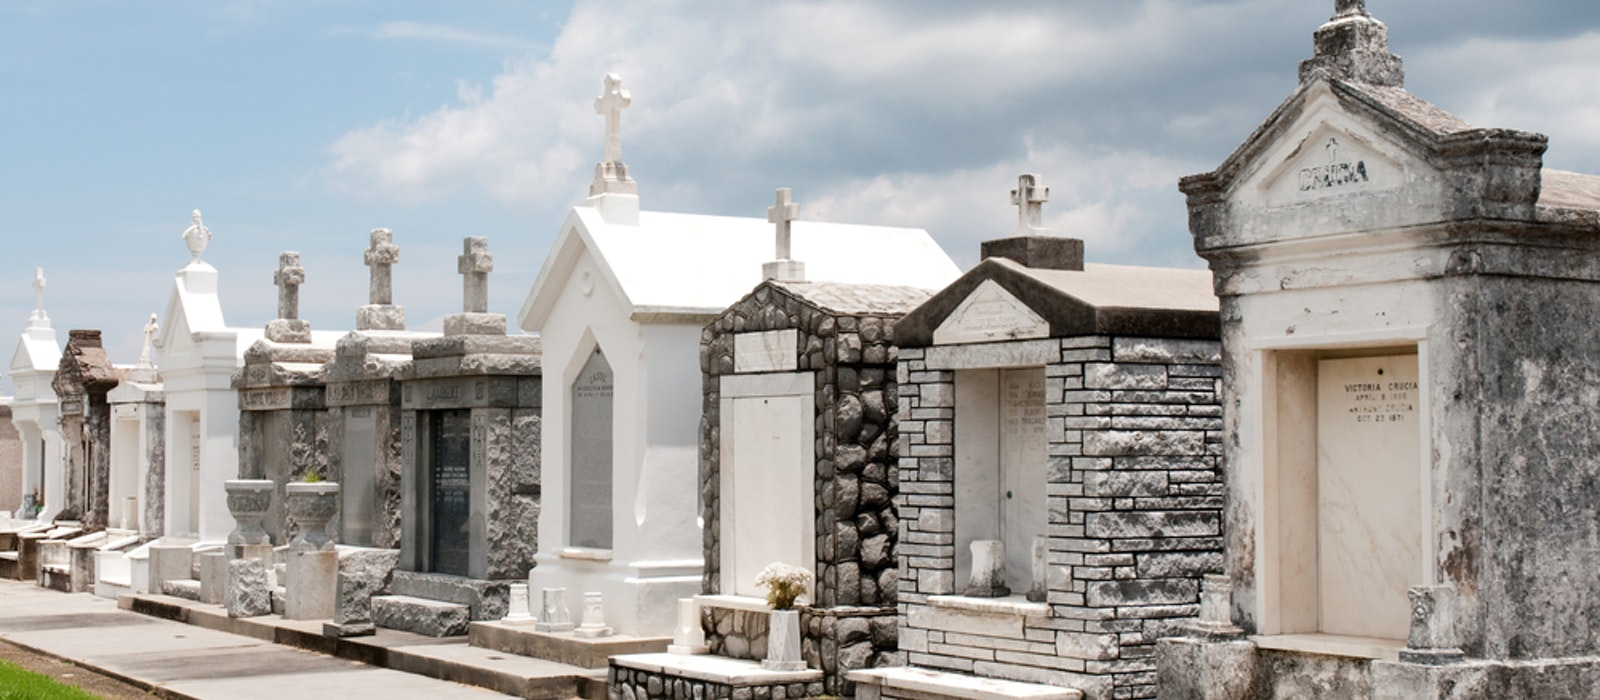 Cemeteries in New Orleans are famous for their above-ground architecture.